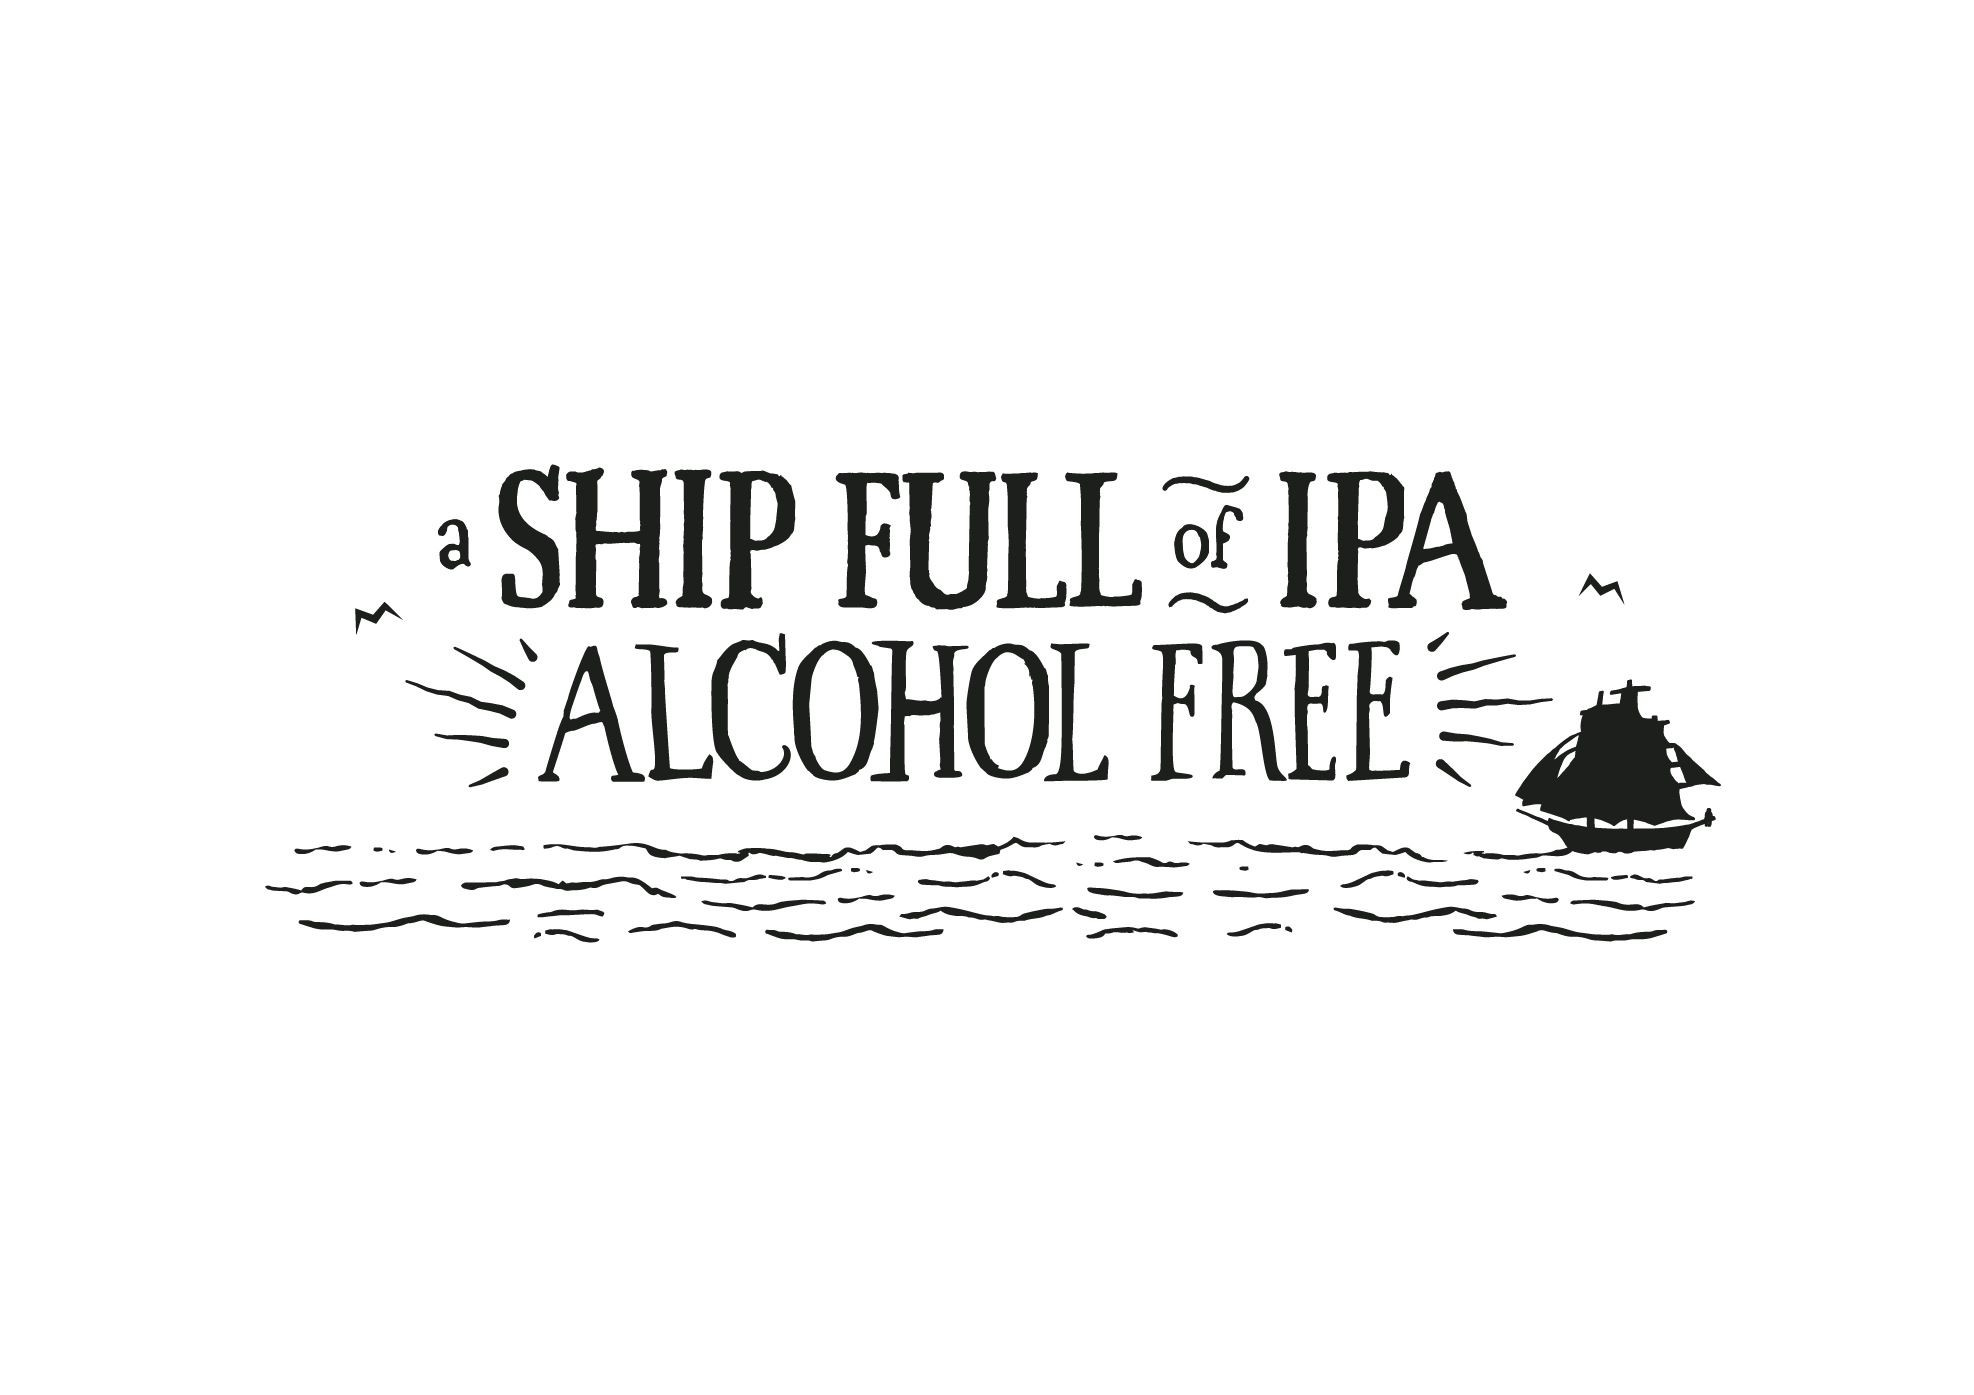 Brutal Brewing Ship Full Of IPA